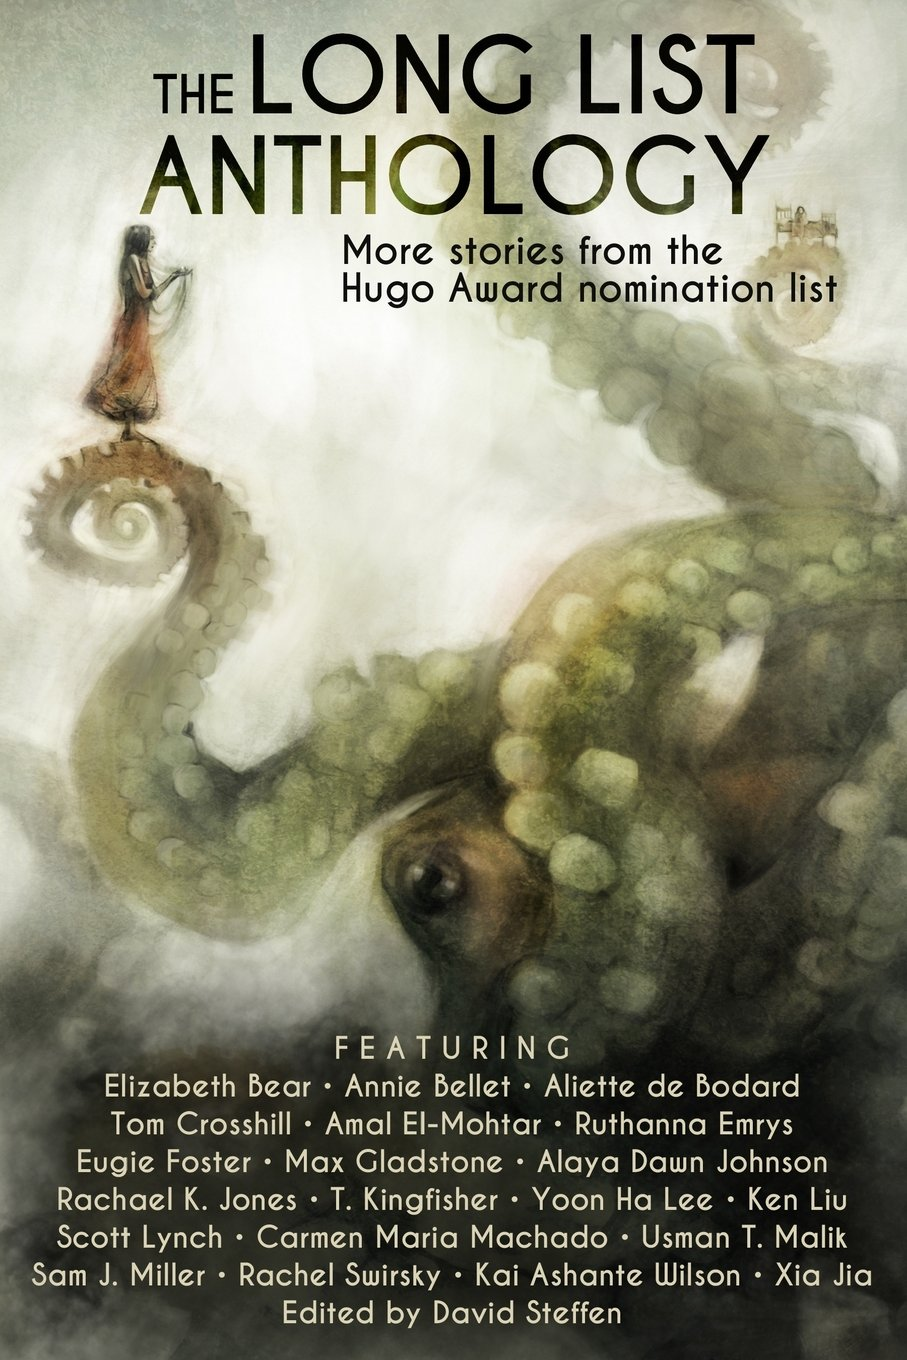 The long list anthology more stories from the hugo awards the long list anthology more stories from the hugo awards nomination list the long list anthology series volume 1 eugie foster usman t malik fandeluxe Image collections